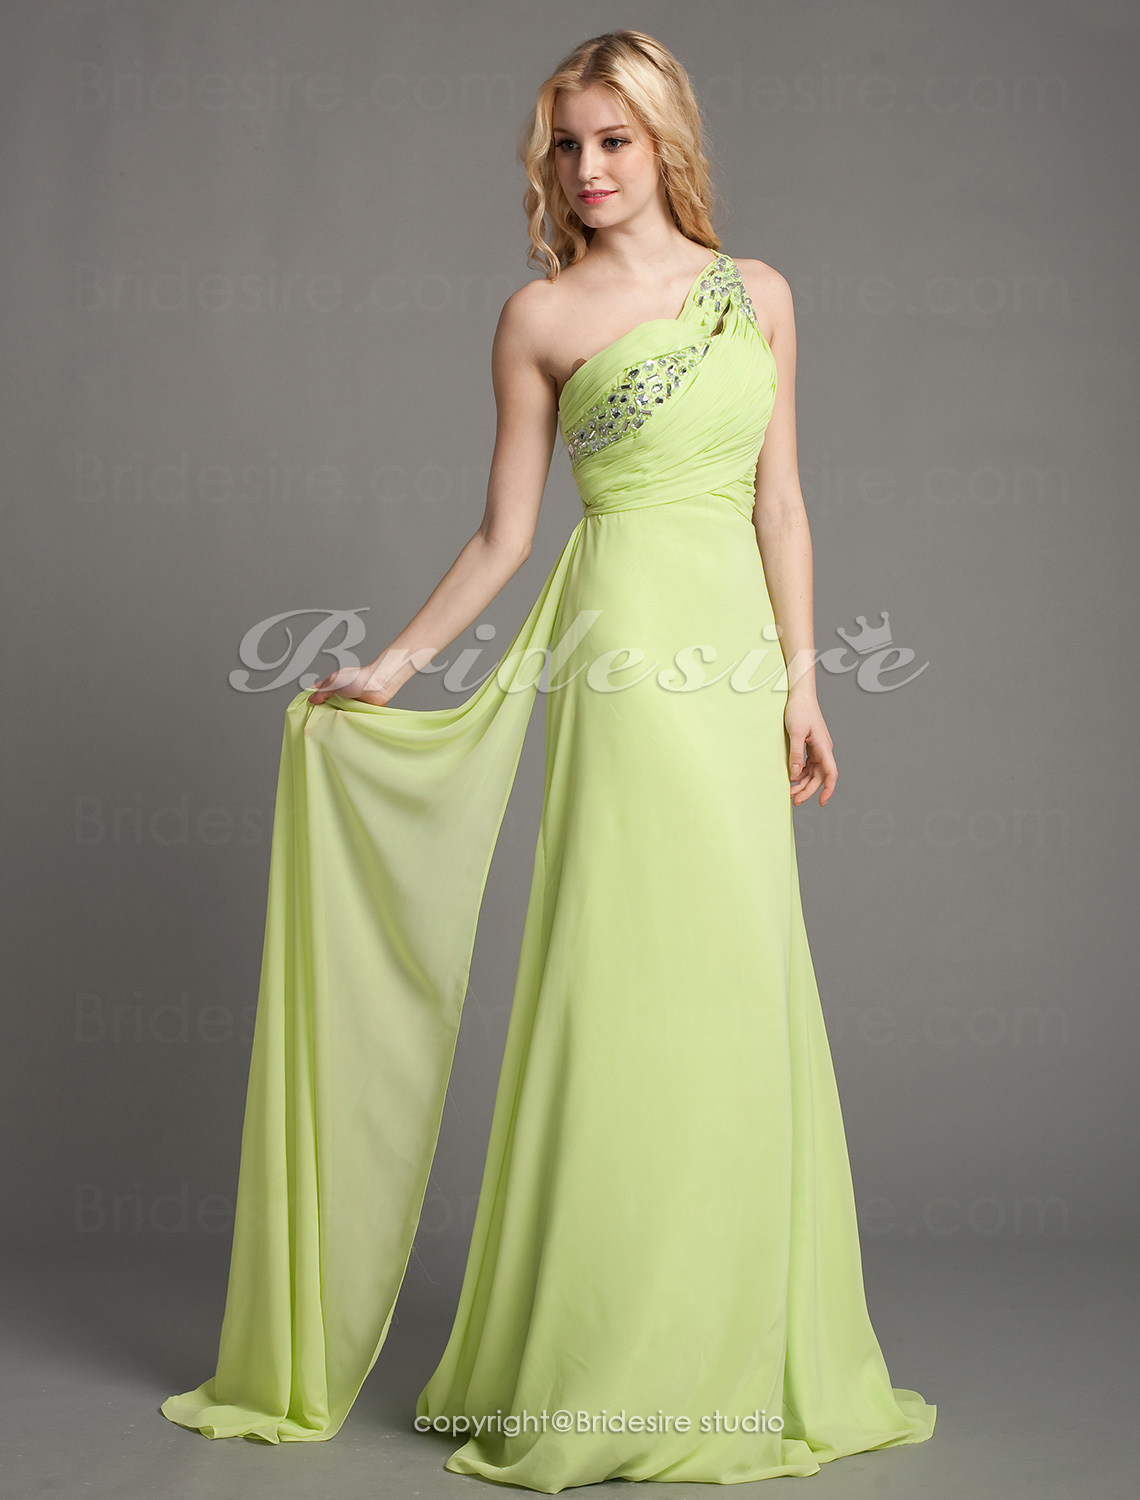 A-linje Chiffon Sweep Train One-Shoulder Aftenkjole